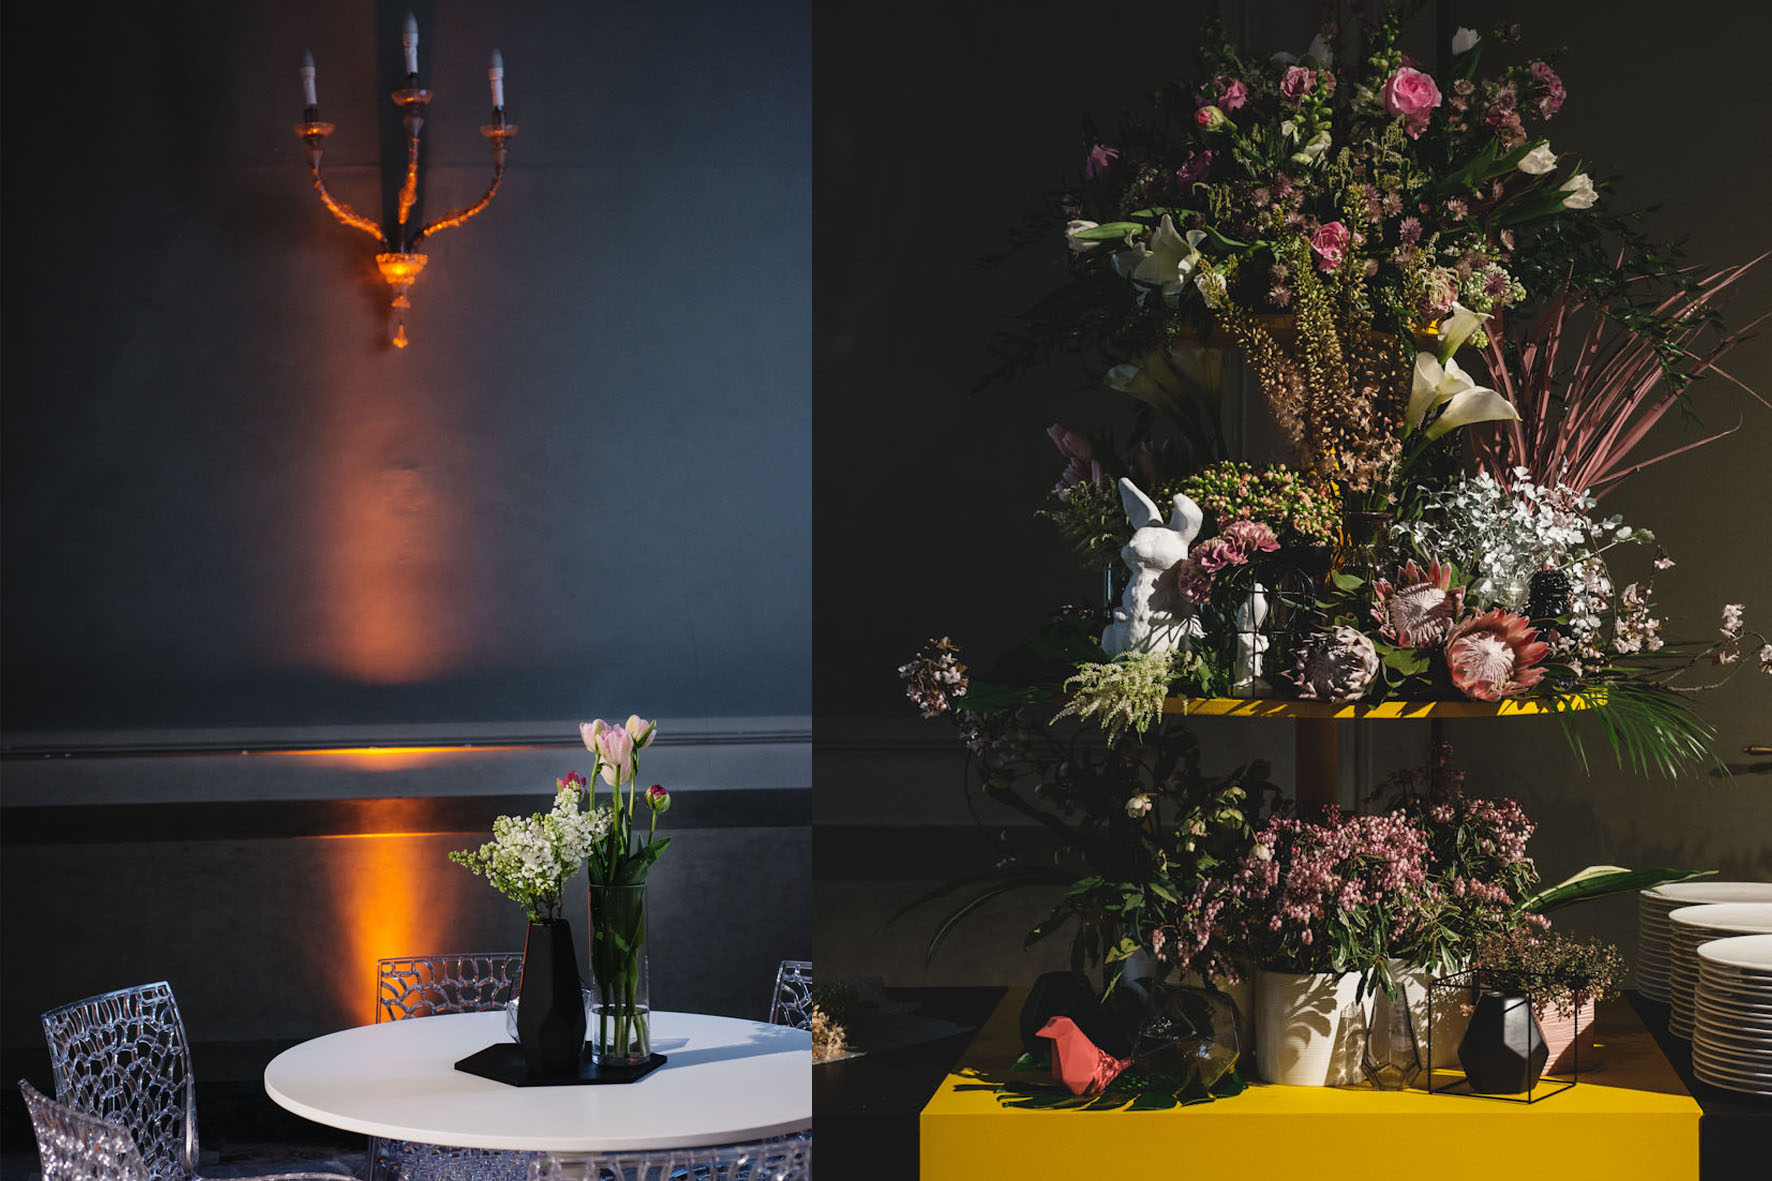 LOUIS VUITTON MOËT HENNESSY Veuve Clicquot VCP Gala Dinner Event Set Design Styling Palazzo Clerici Milano 08